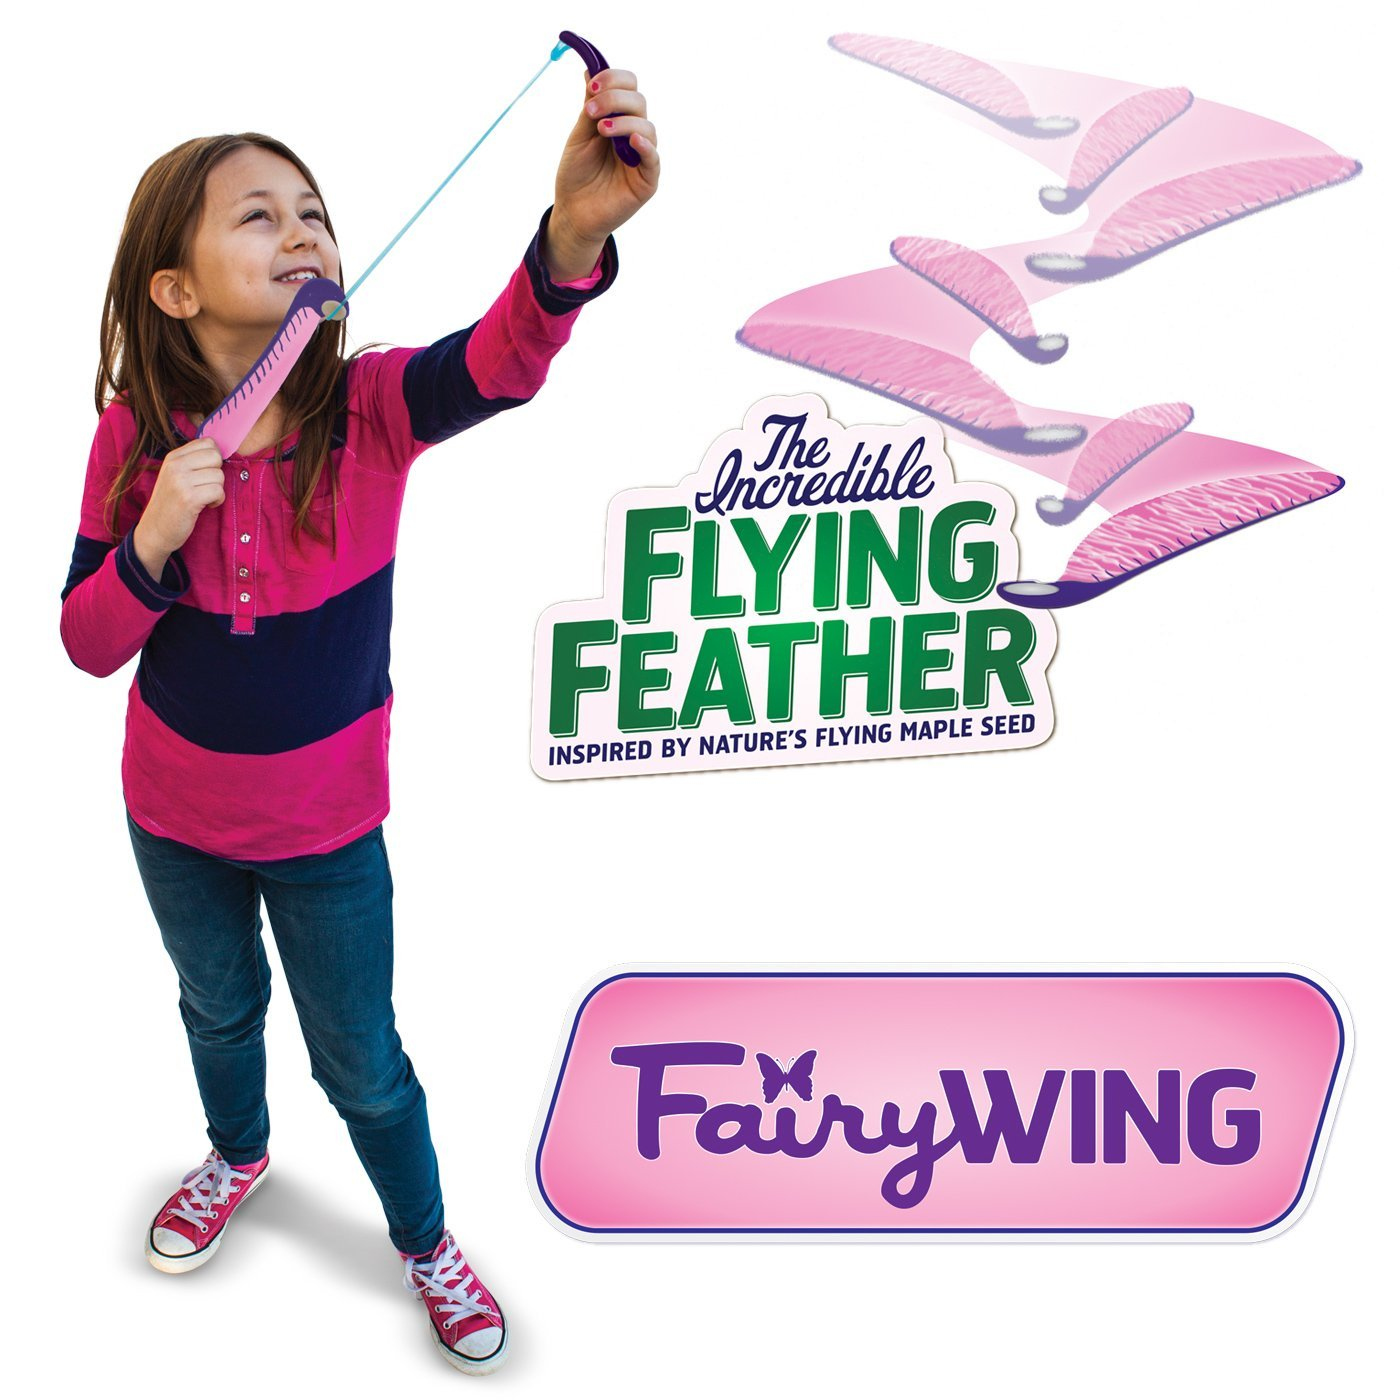 The Incredible Flying Feather  in.Fairy Wing in. with Bungee Launcher